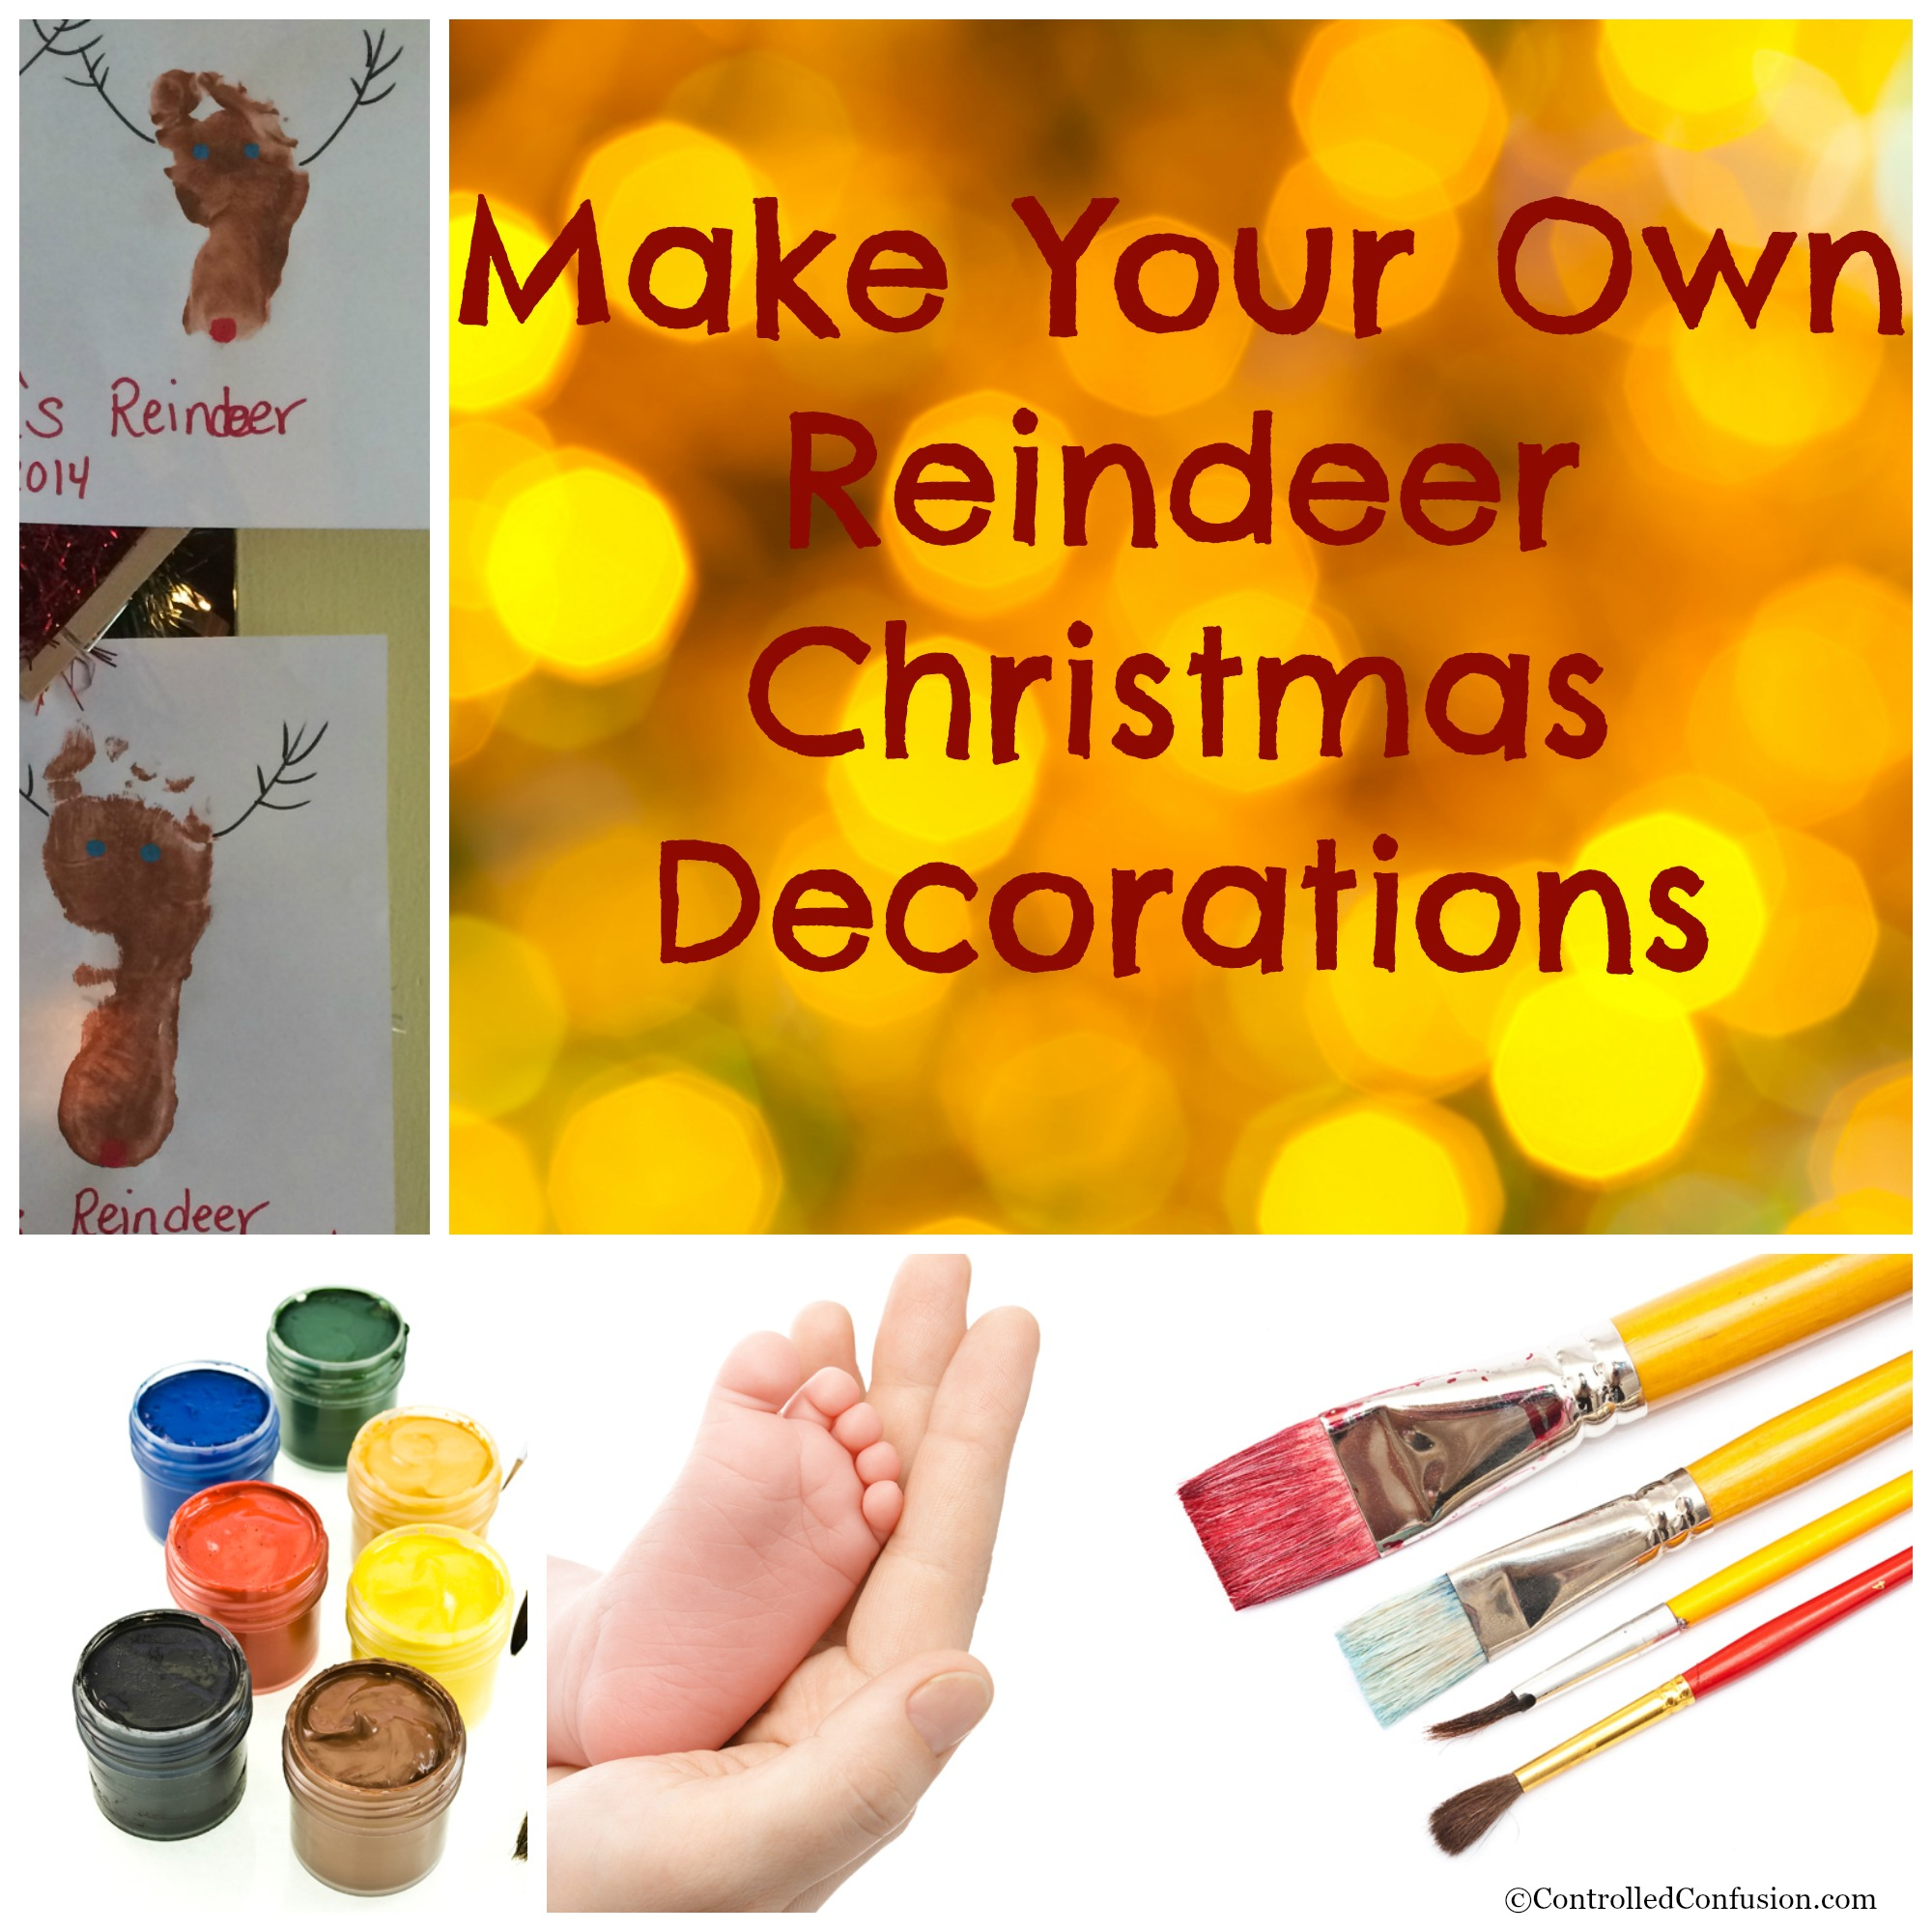 Make Your Own Reindeer Christmas Decorations